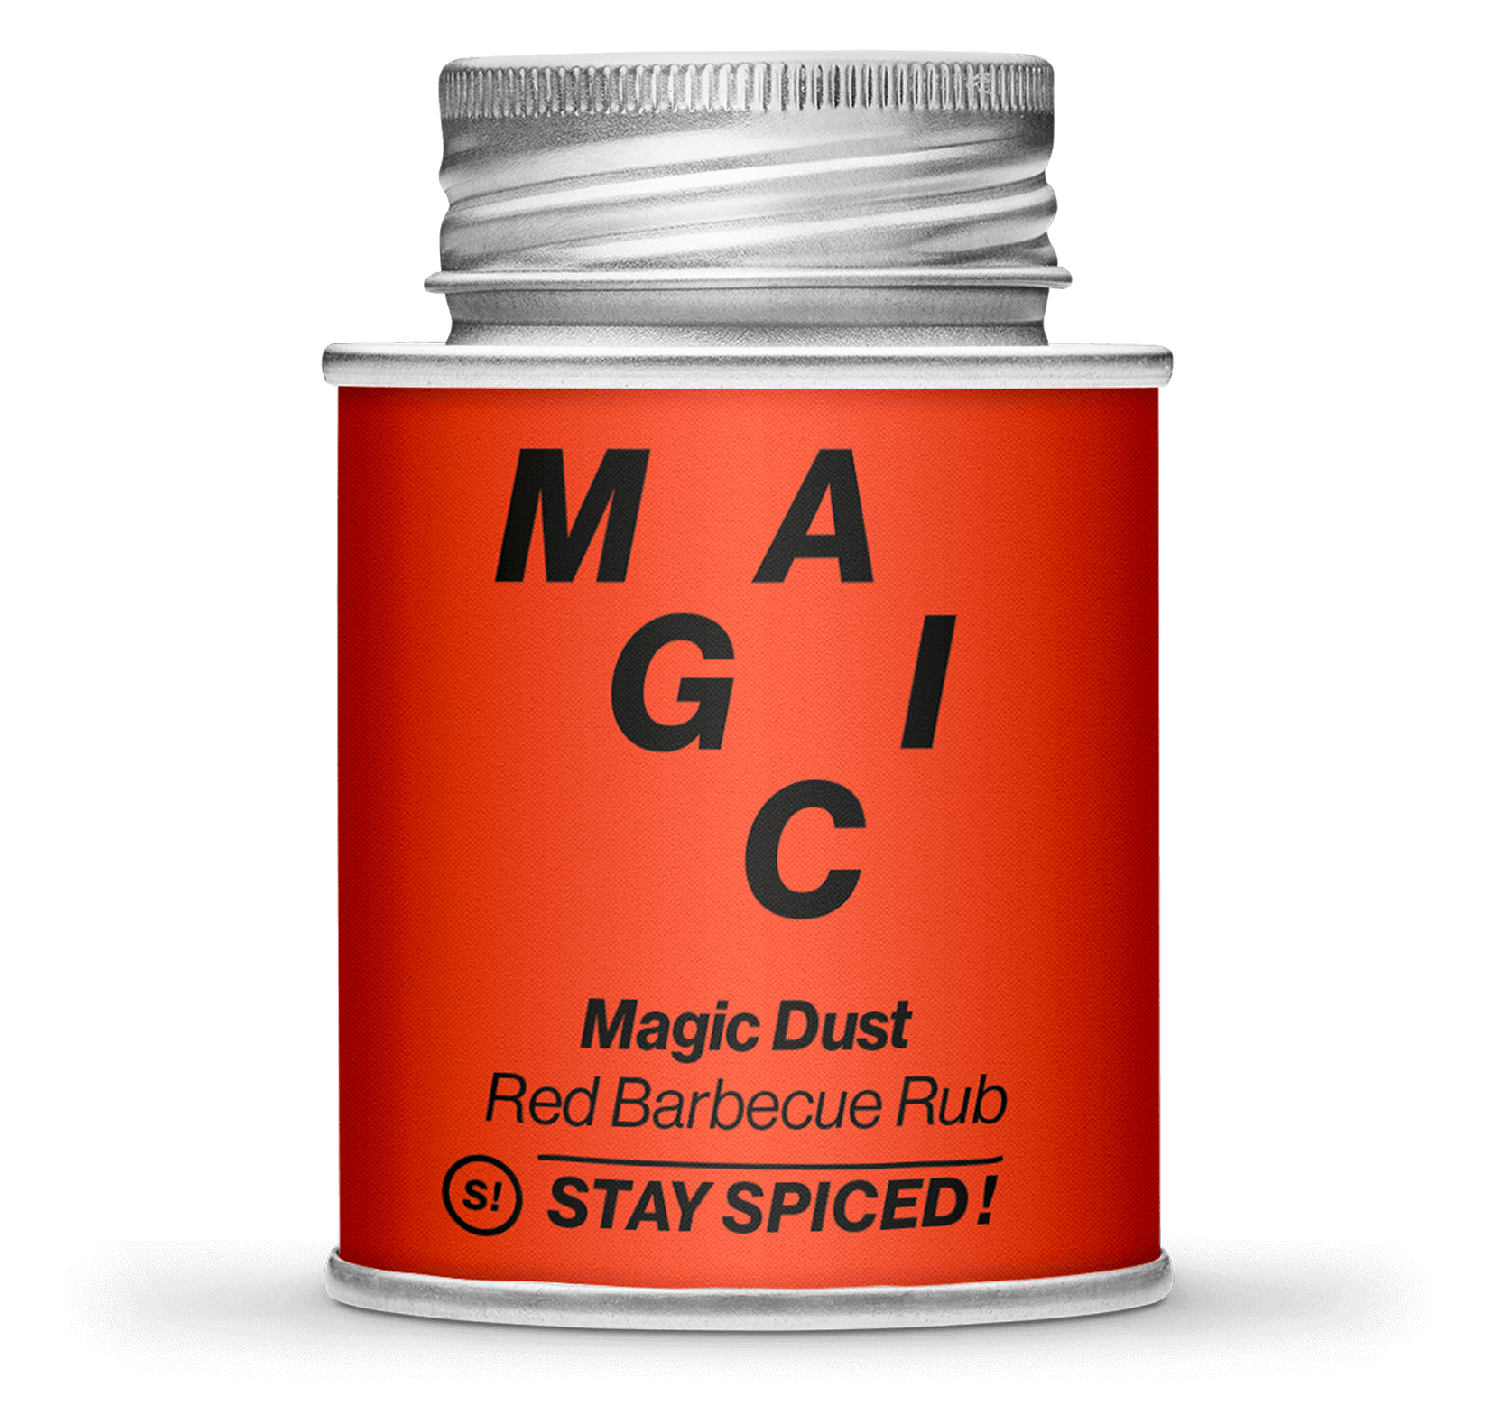 Barbecue for Champions - Magic Dust - Red BBQ Rub